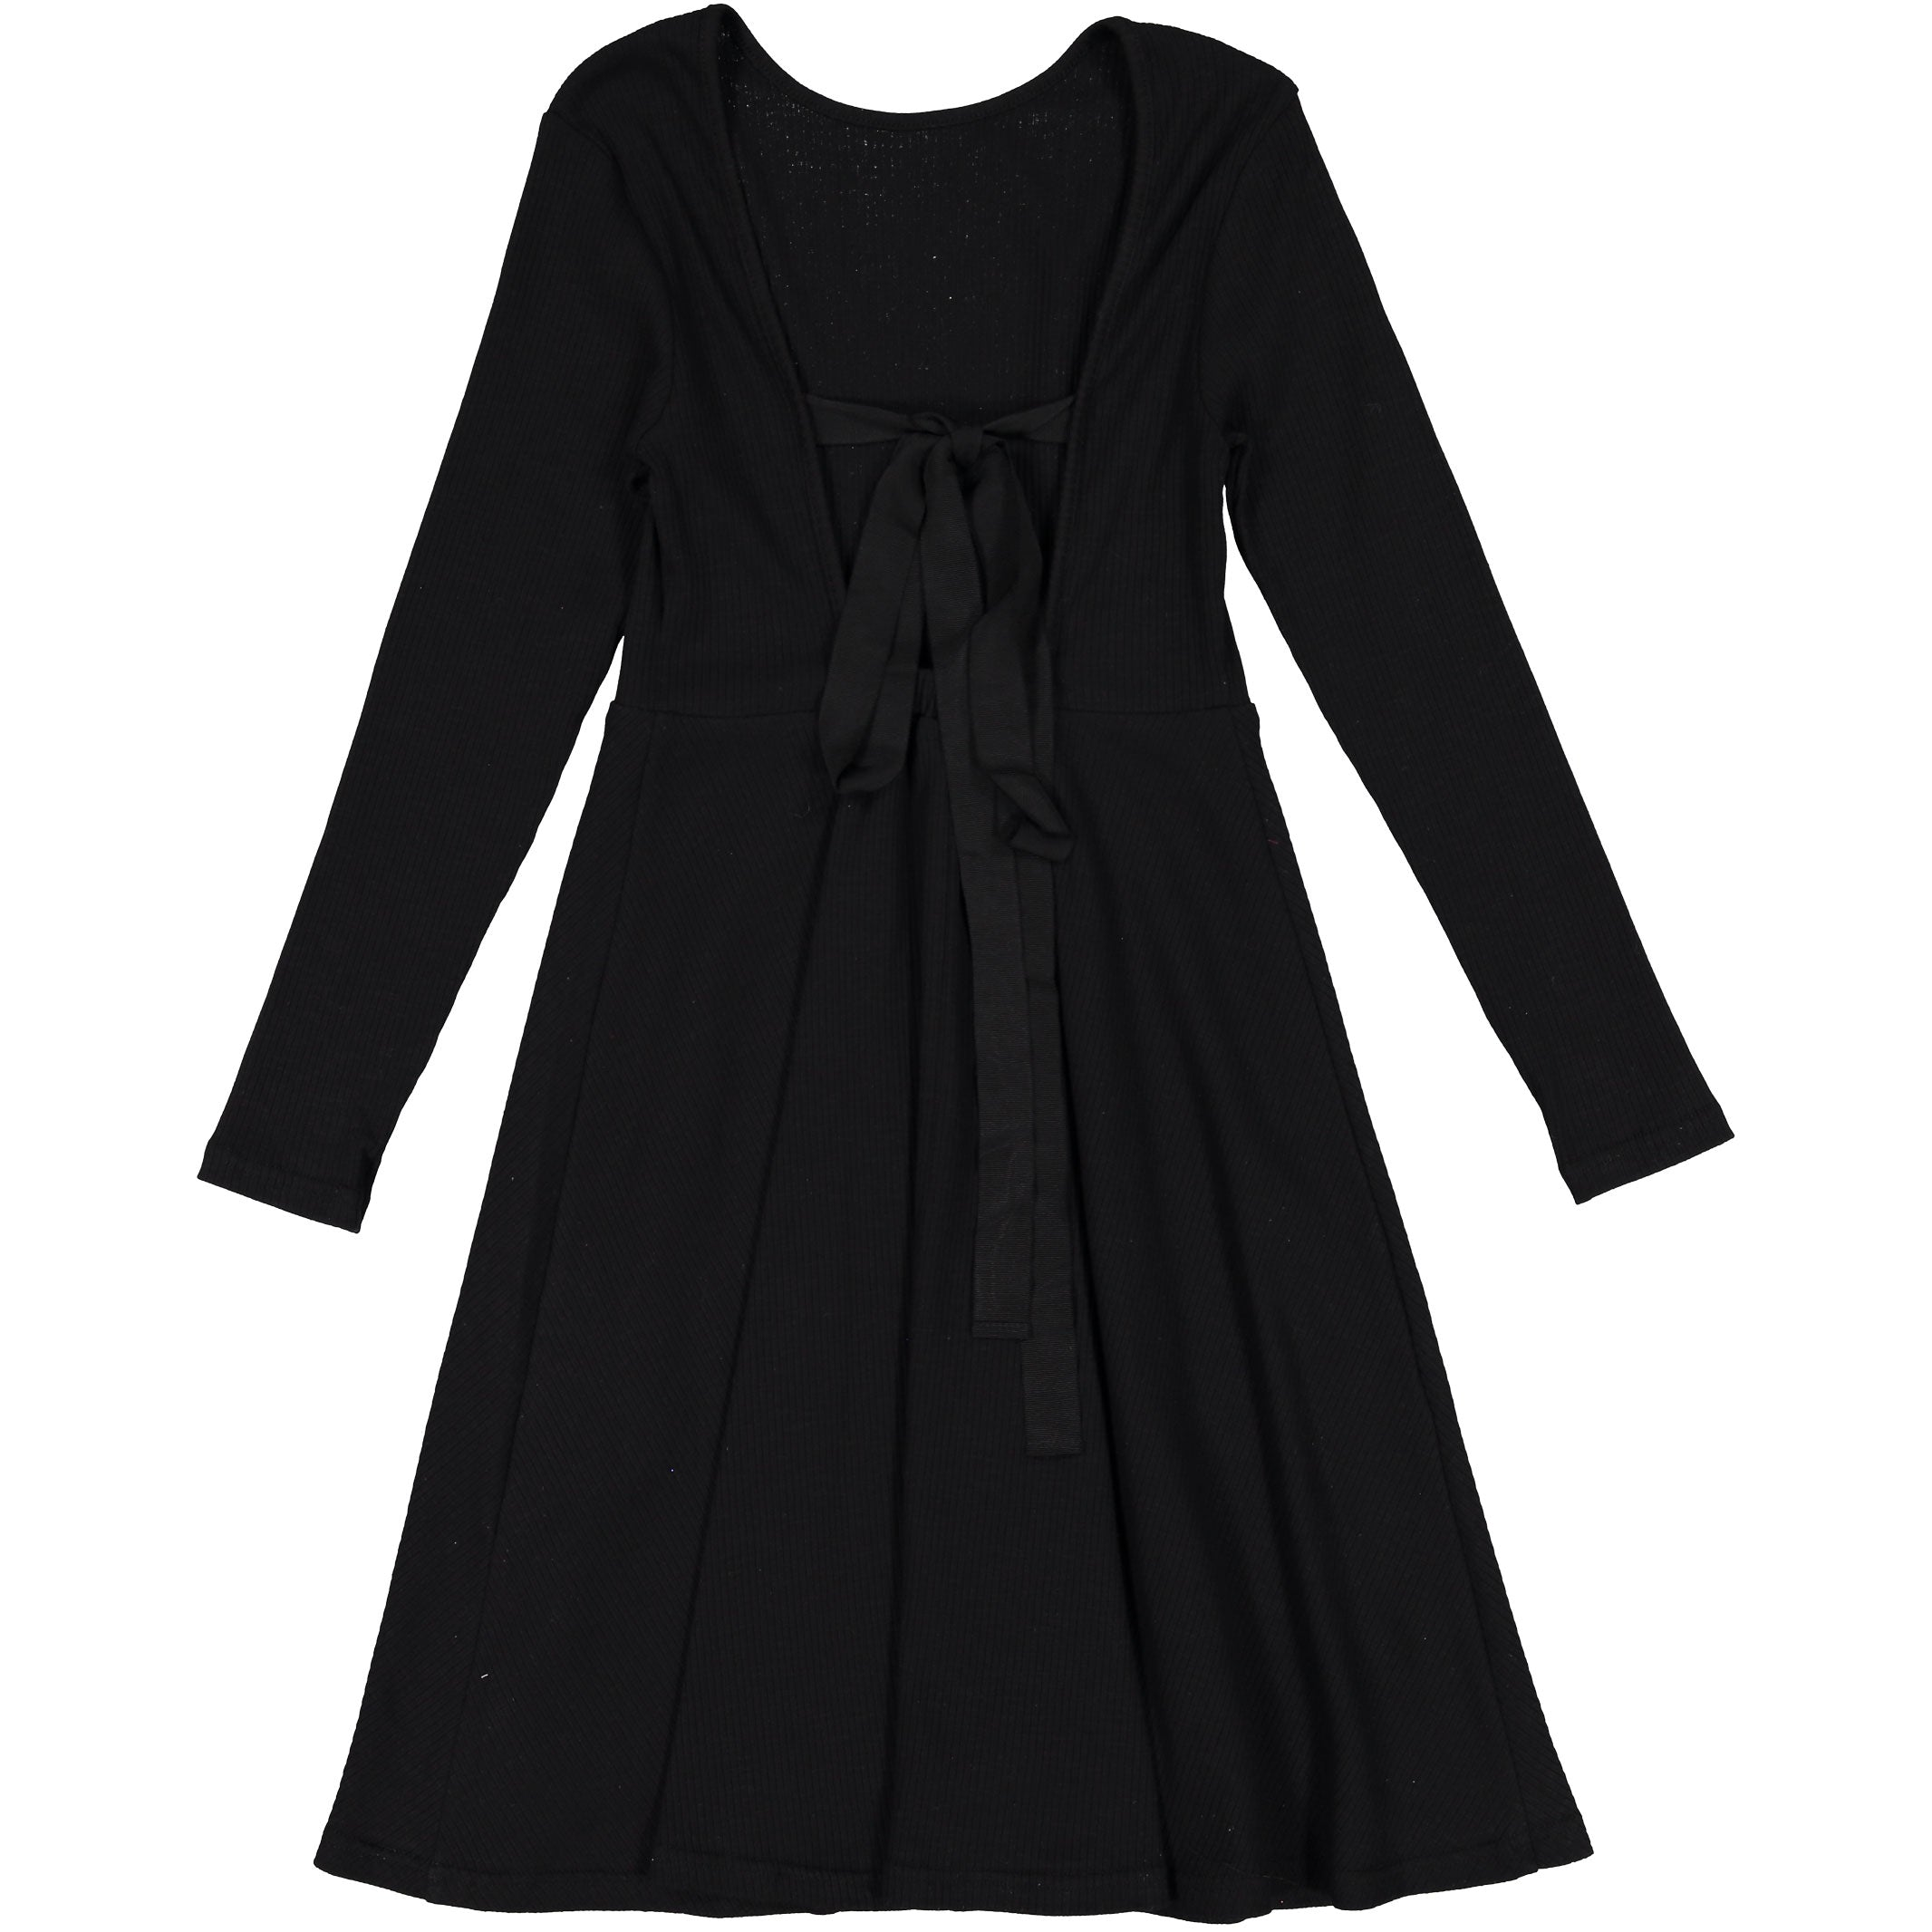 Ava & Lu Black Flair Dress - Ladida